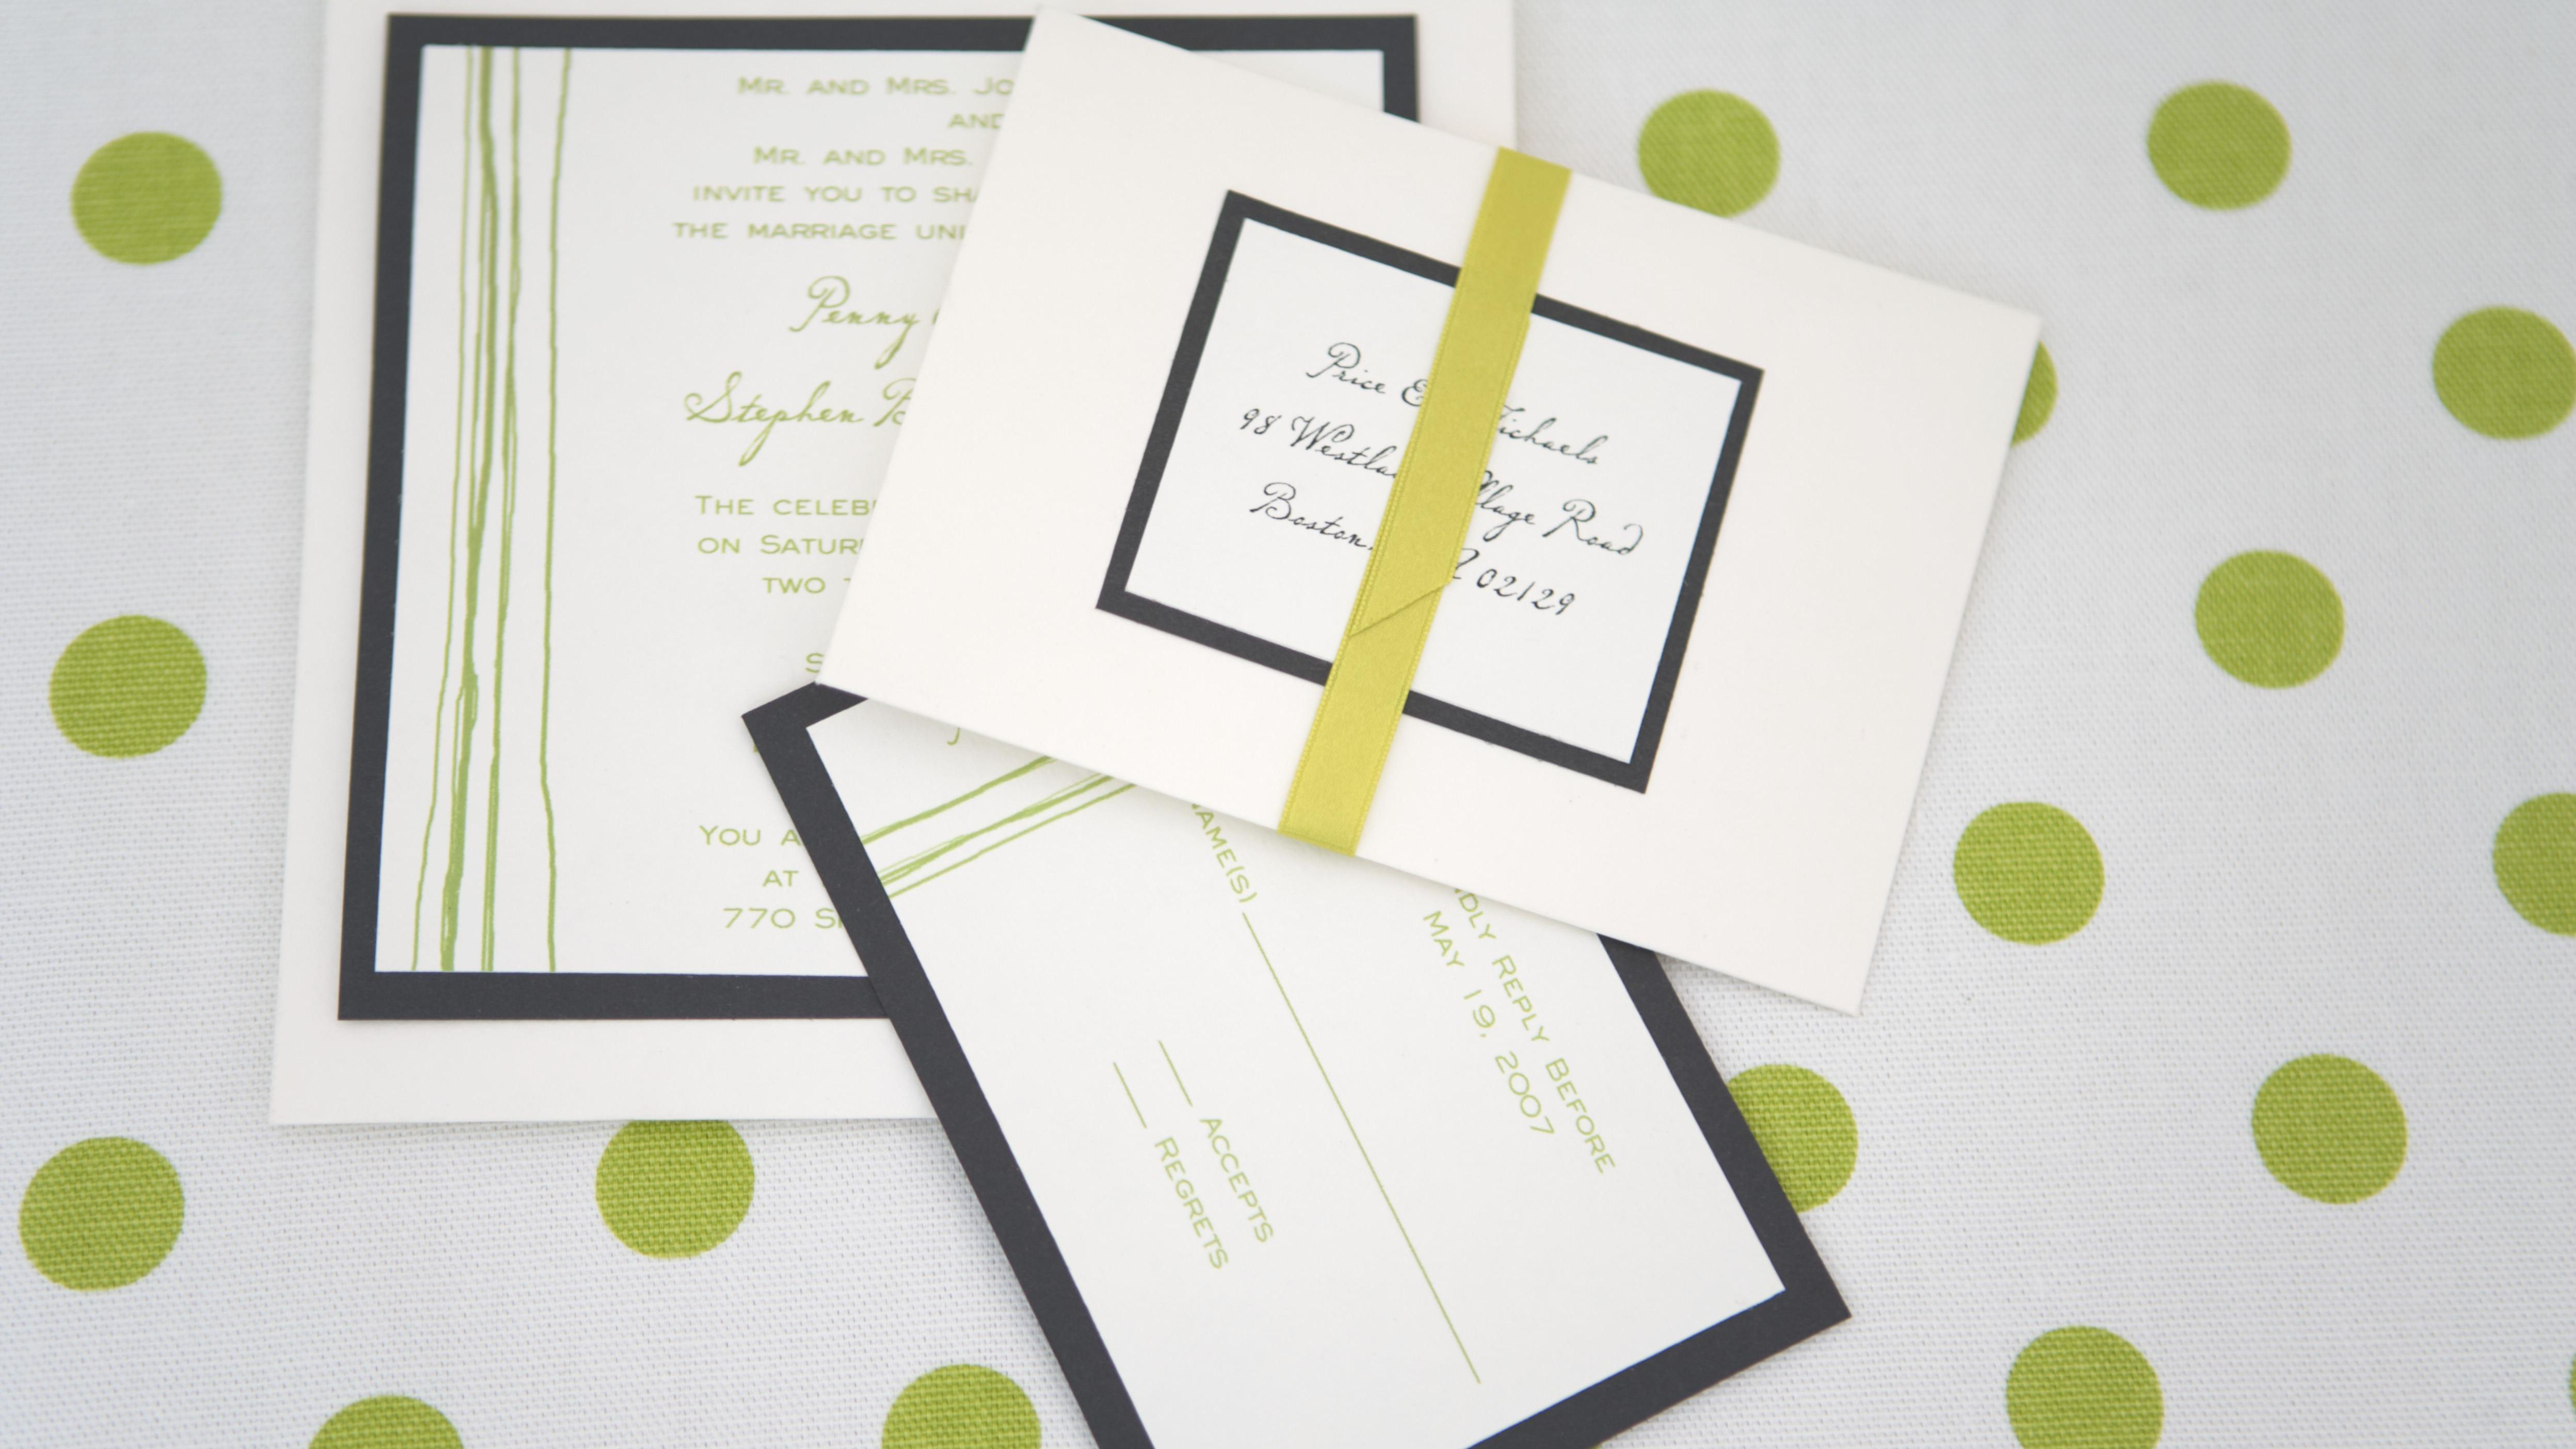 7 Tips For Getting Wedding Guests To Rsvp